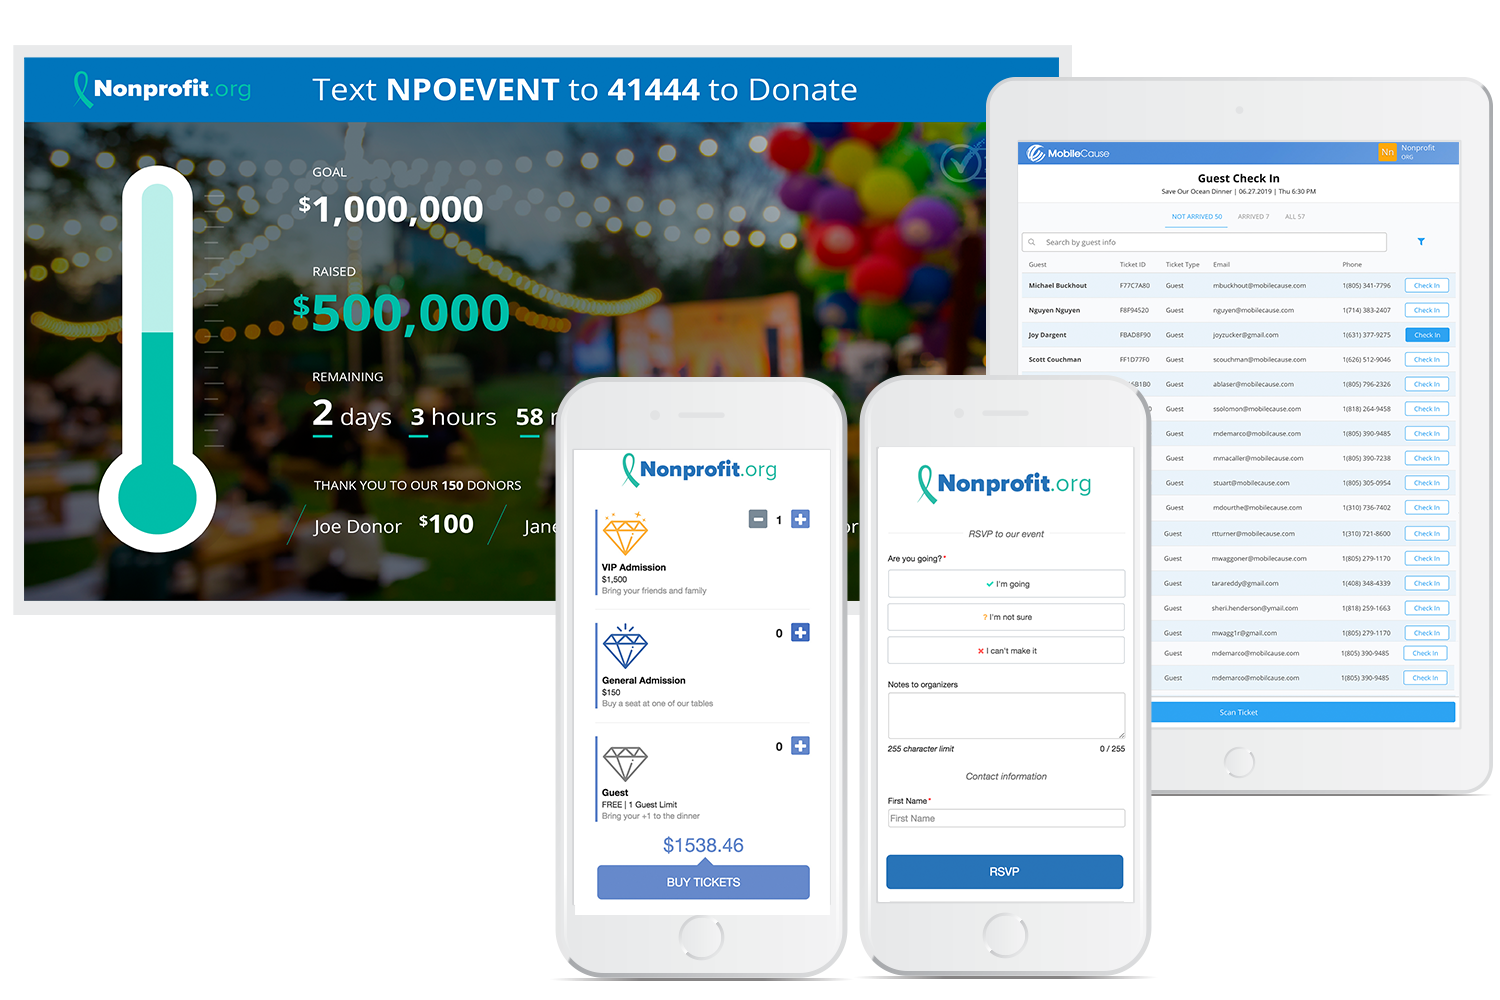 Nonprofit.org_Demo_EventWorks_MockUp_Final_Perfect_3_22_19